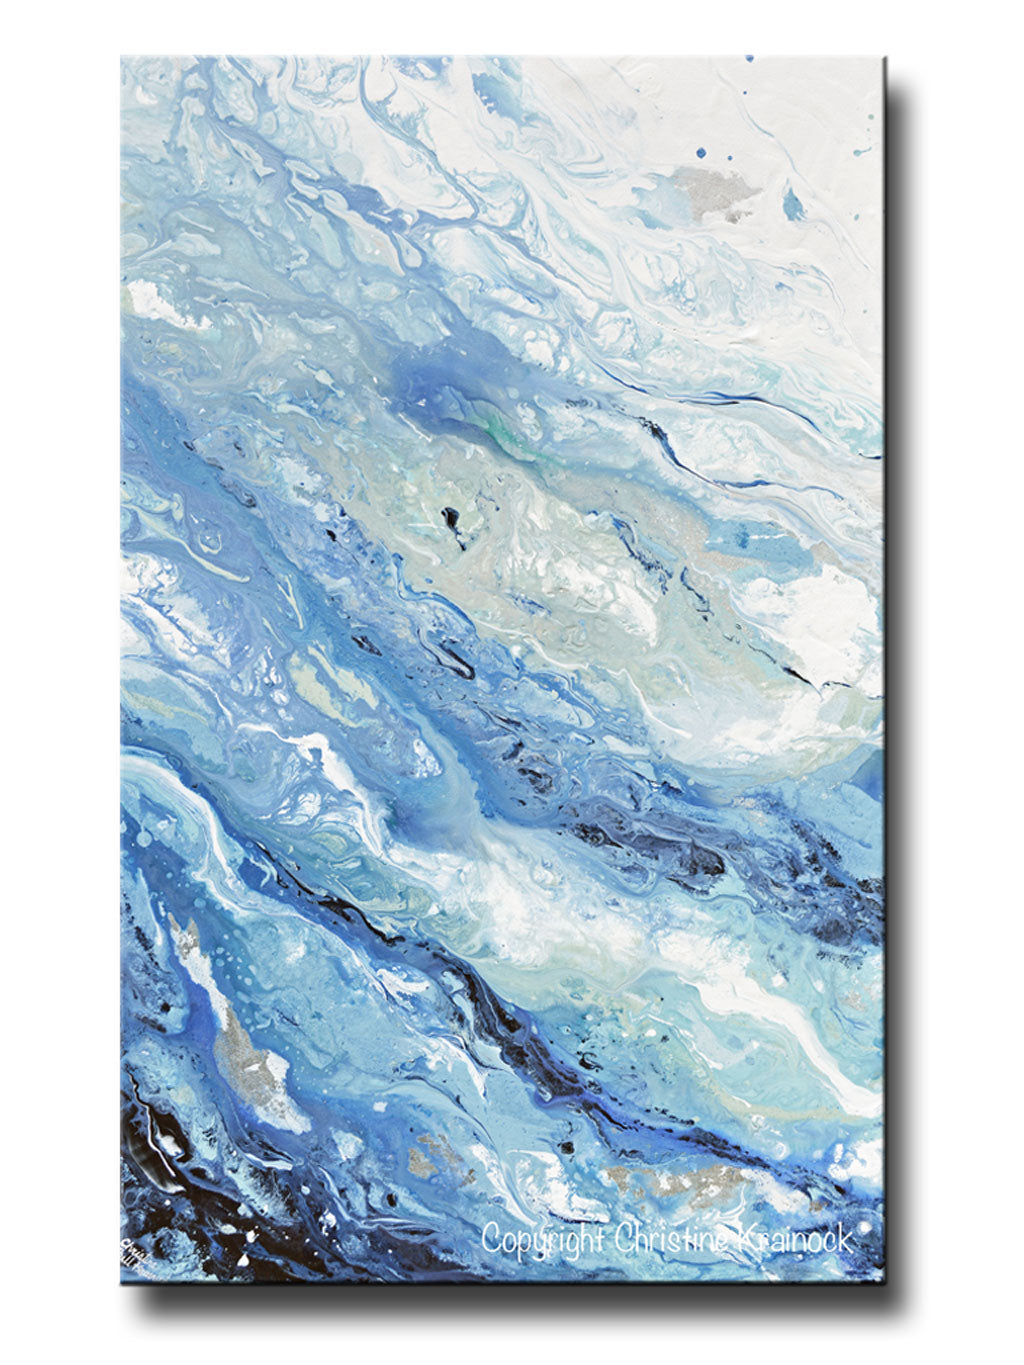 GICLEE PRINT Art Abstract Painting Blue White Coastal Marbled Seascape Large Canvas Prints Wall Art  sc 1 st  Contemporary Art by Christine & GICLEE PRINT Art Abstract Painting Blue White Marbled Coastal ...